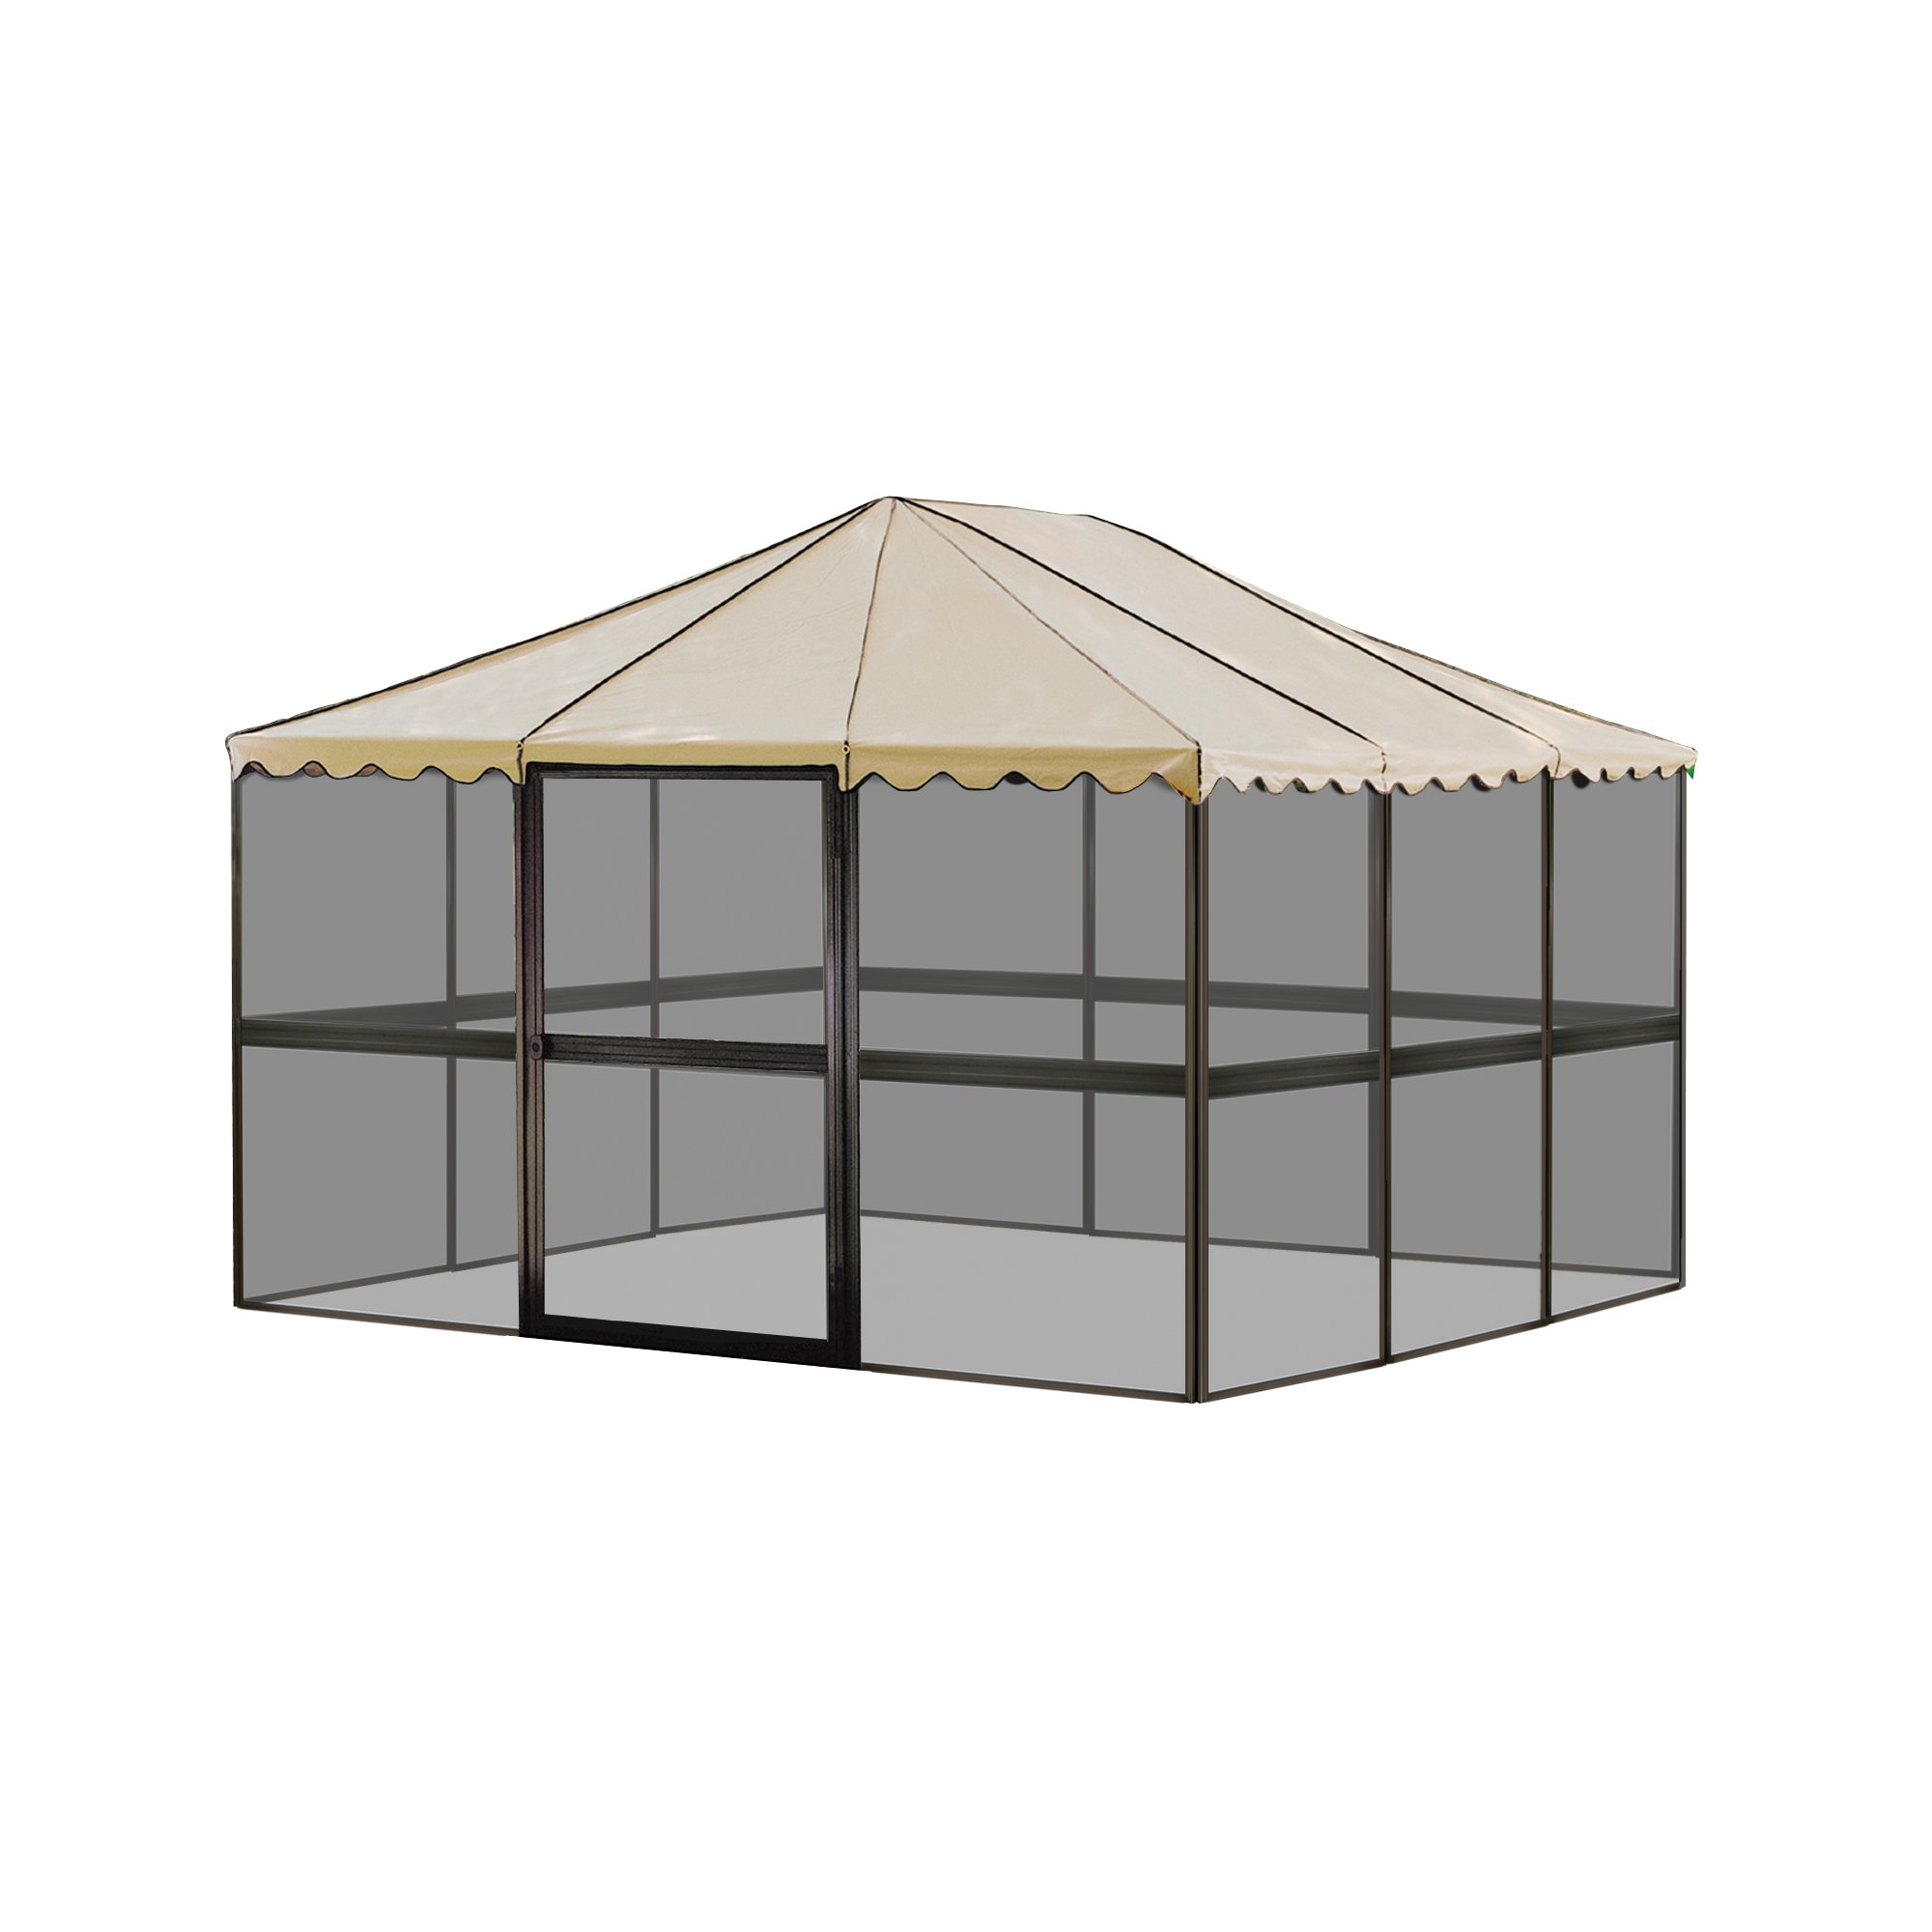 Casita 12-Panel Square Screenhouse Model 21165 Brown with Almond Roof Canopy